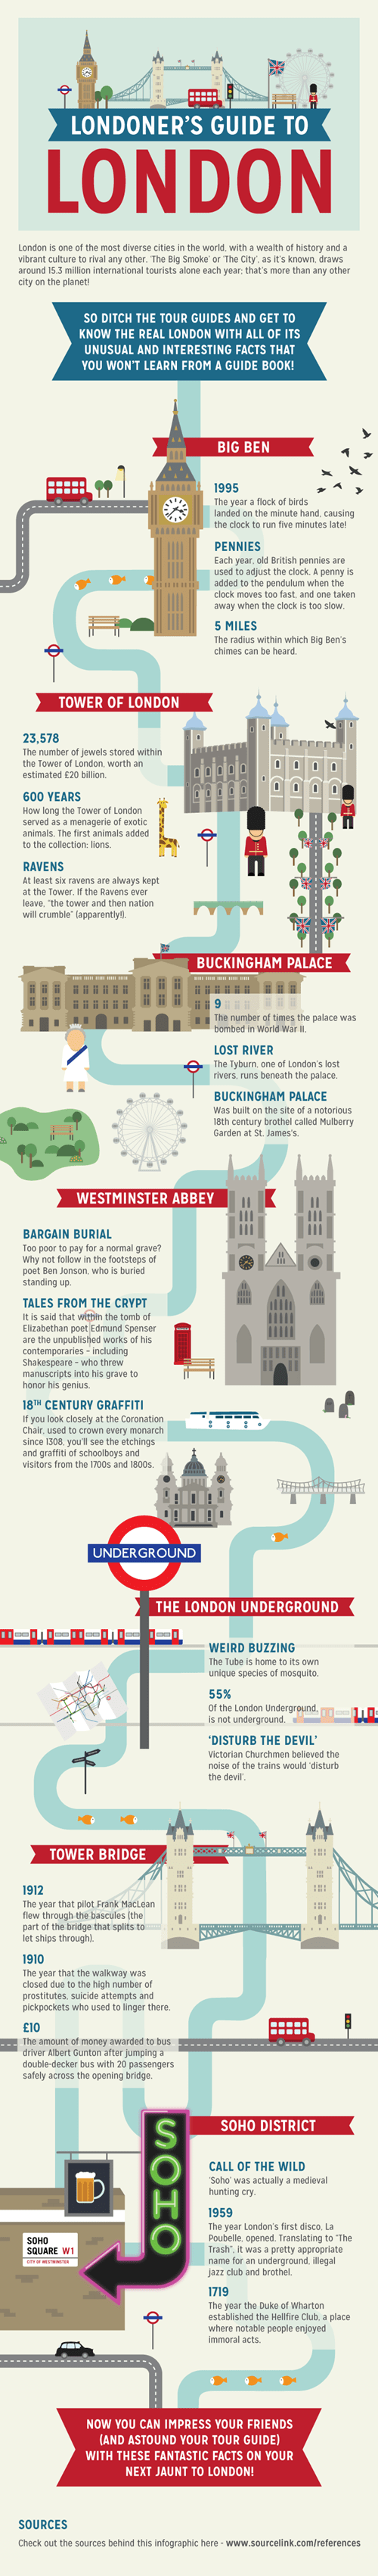 London traveling infographic - 7935827712